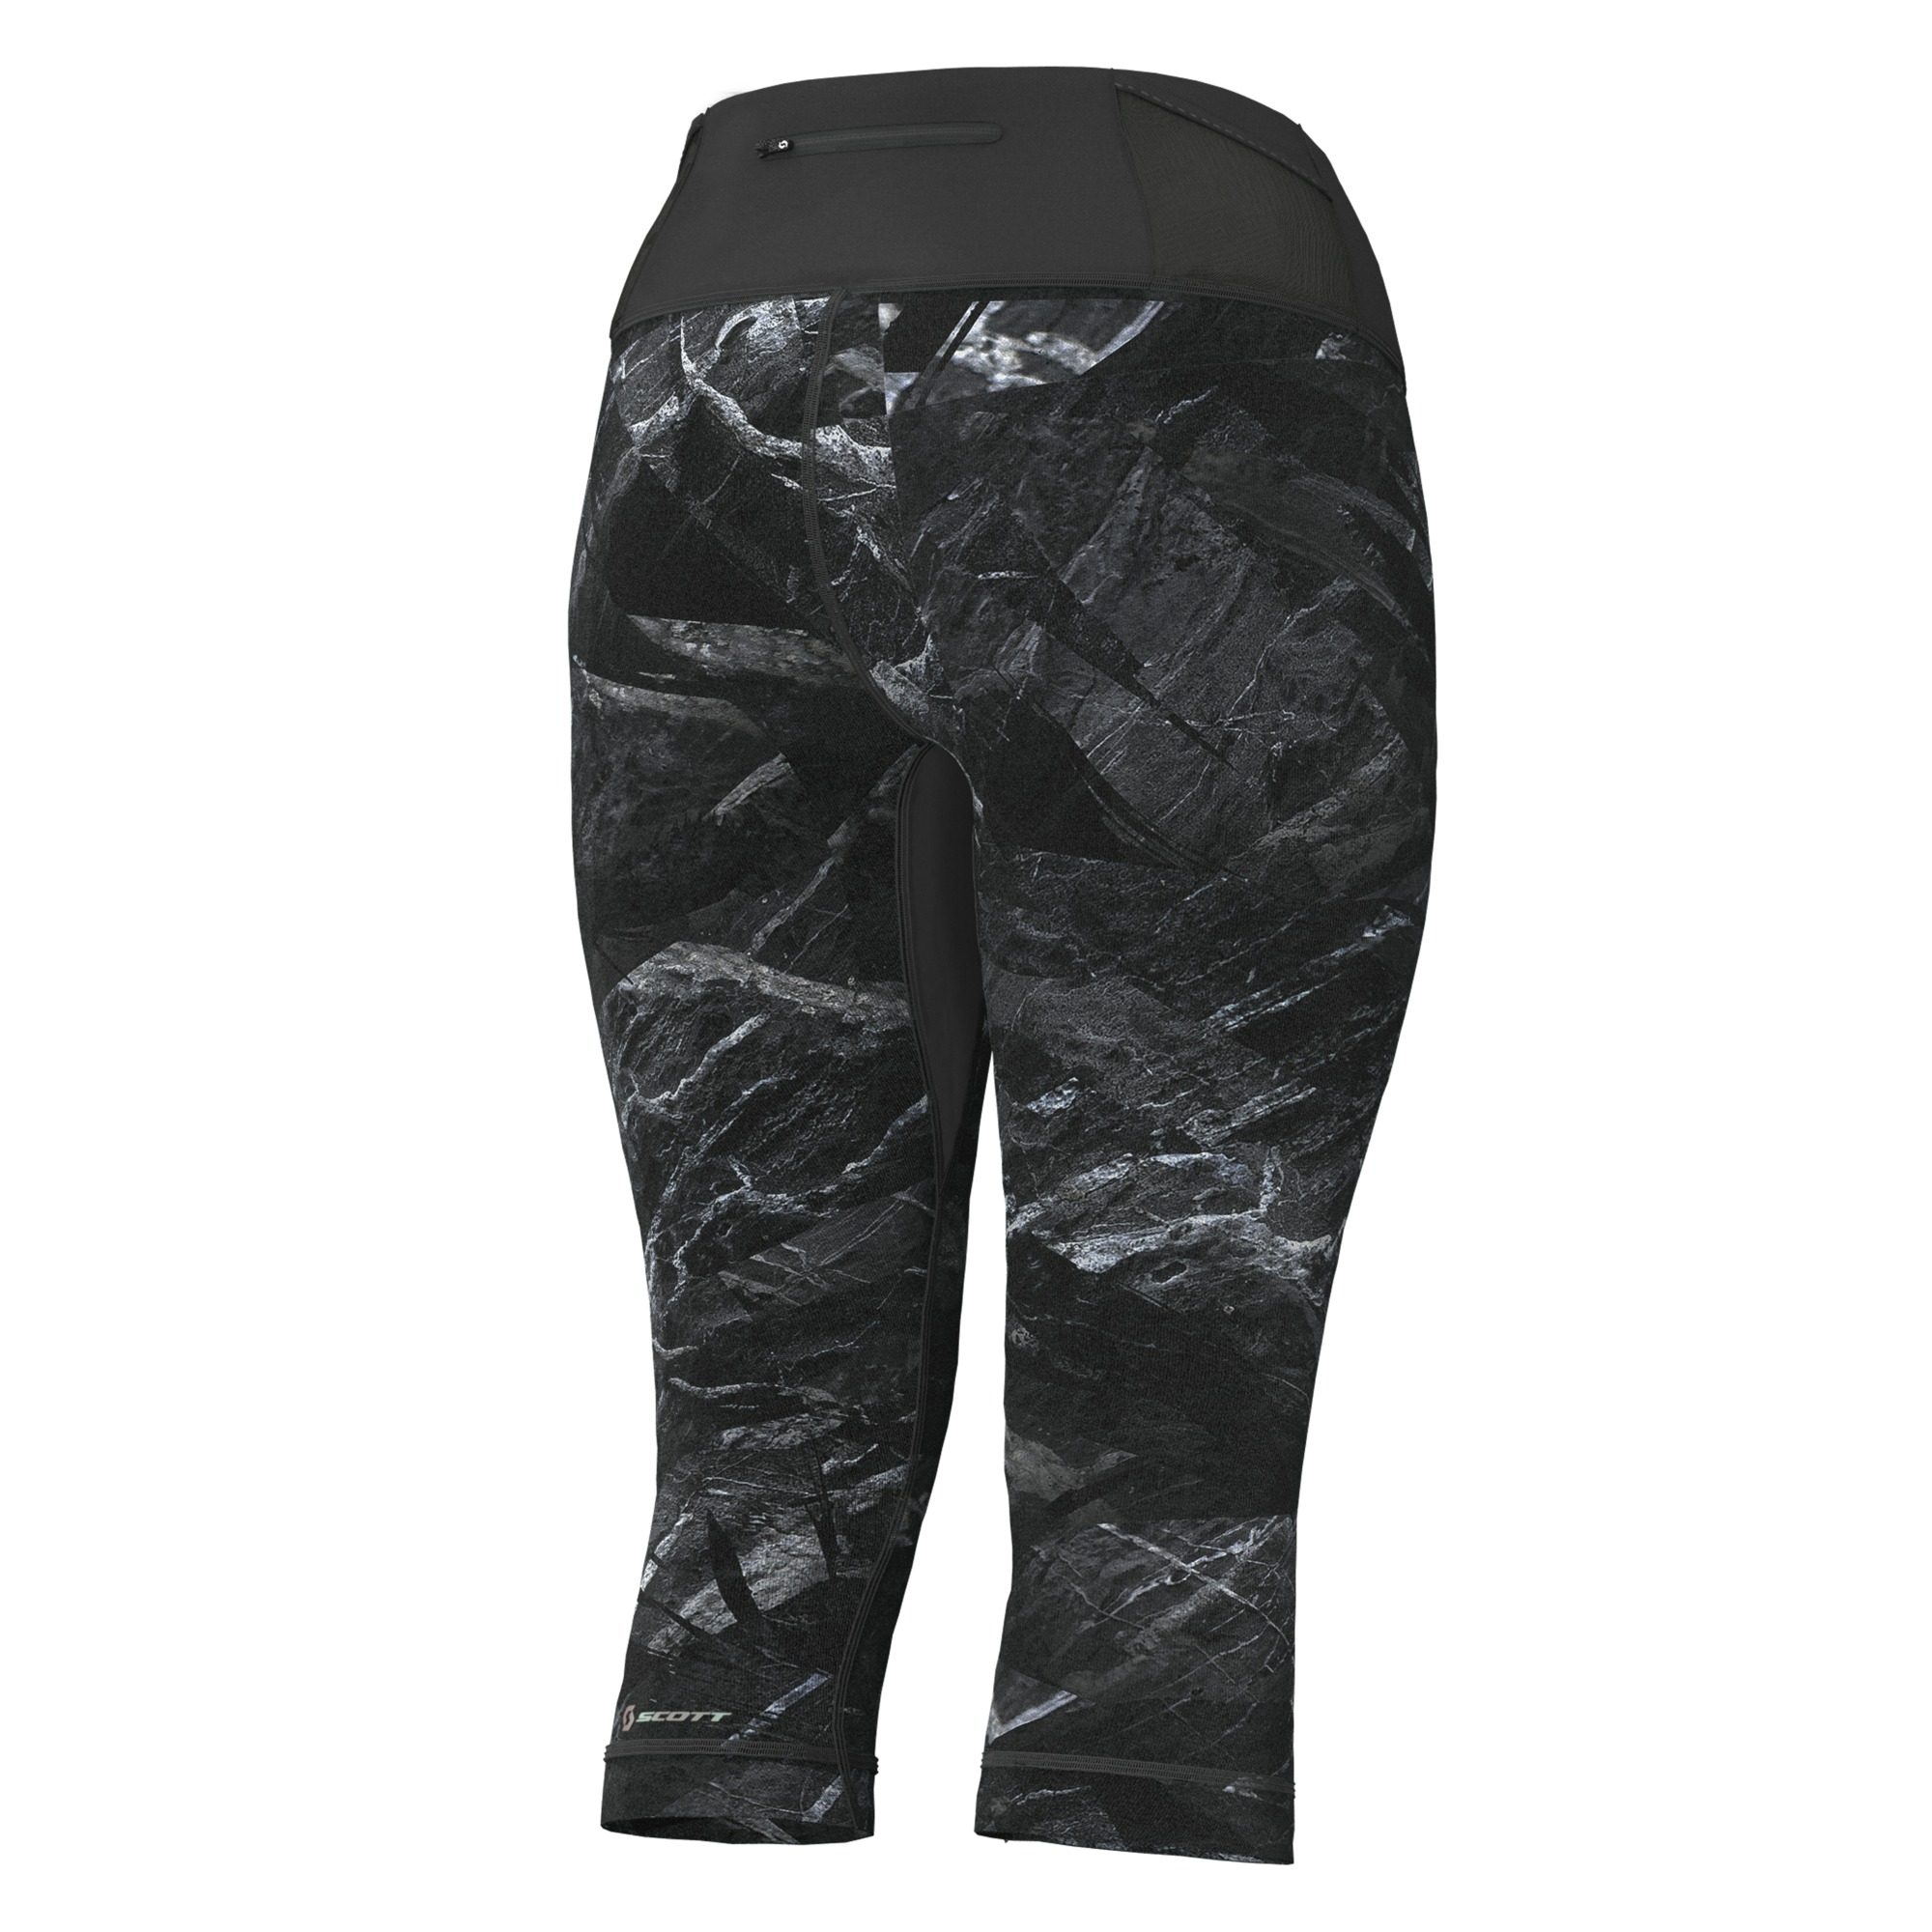 SCOTT Run Kinabalu Women's 3/4 Tight